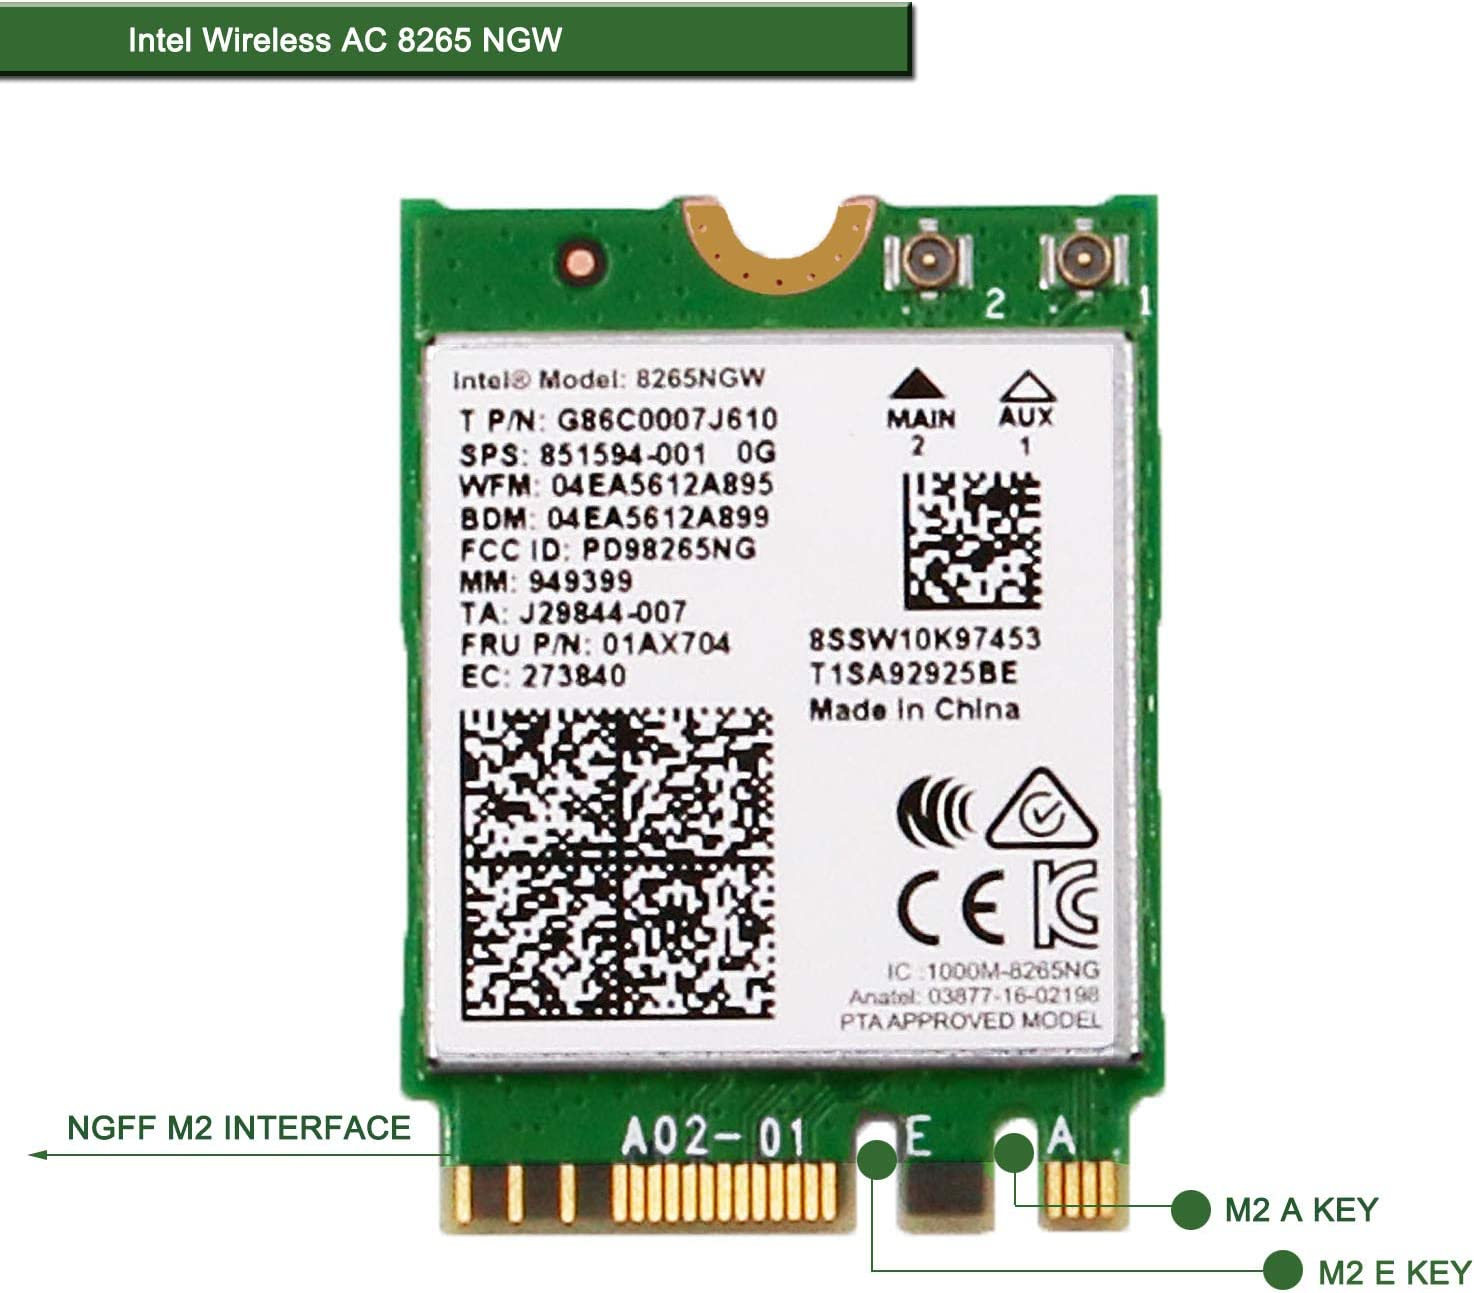 RCC Dual Band Wireless AC 8260 8260AC NGFF WiFi Card USE for Intel 8260 AC AC8260 8260NGW M.2 NGFF 2.4//5GHz Bluetooth 4.2 Wireless WiFi Card 867 Mbps